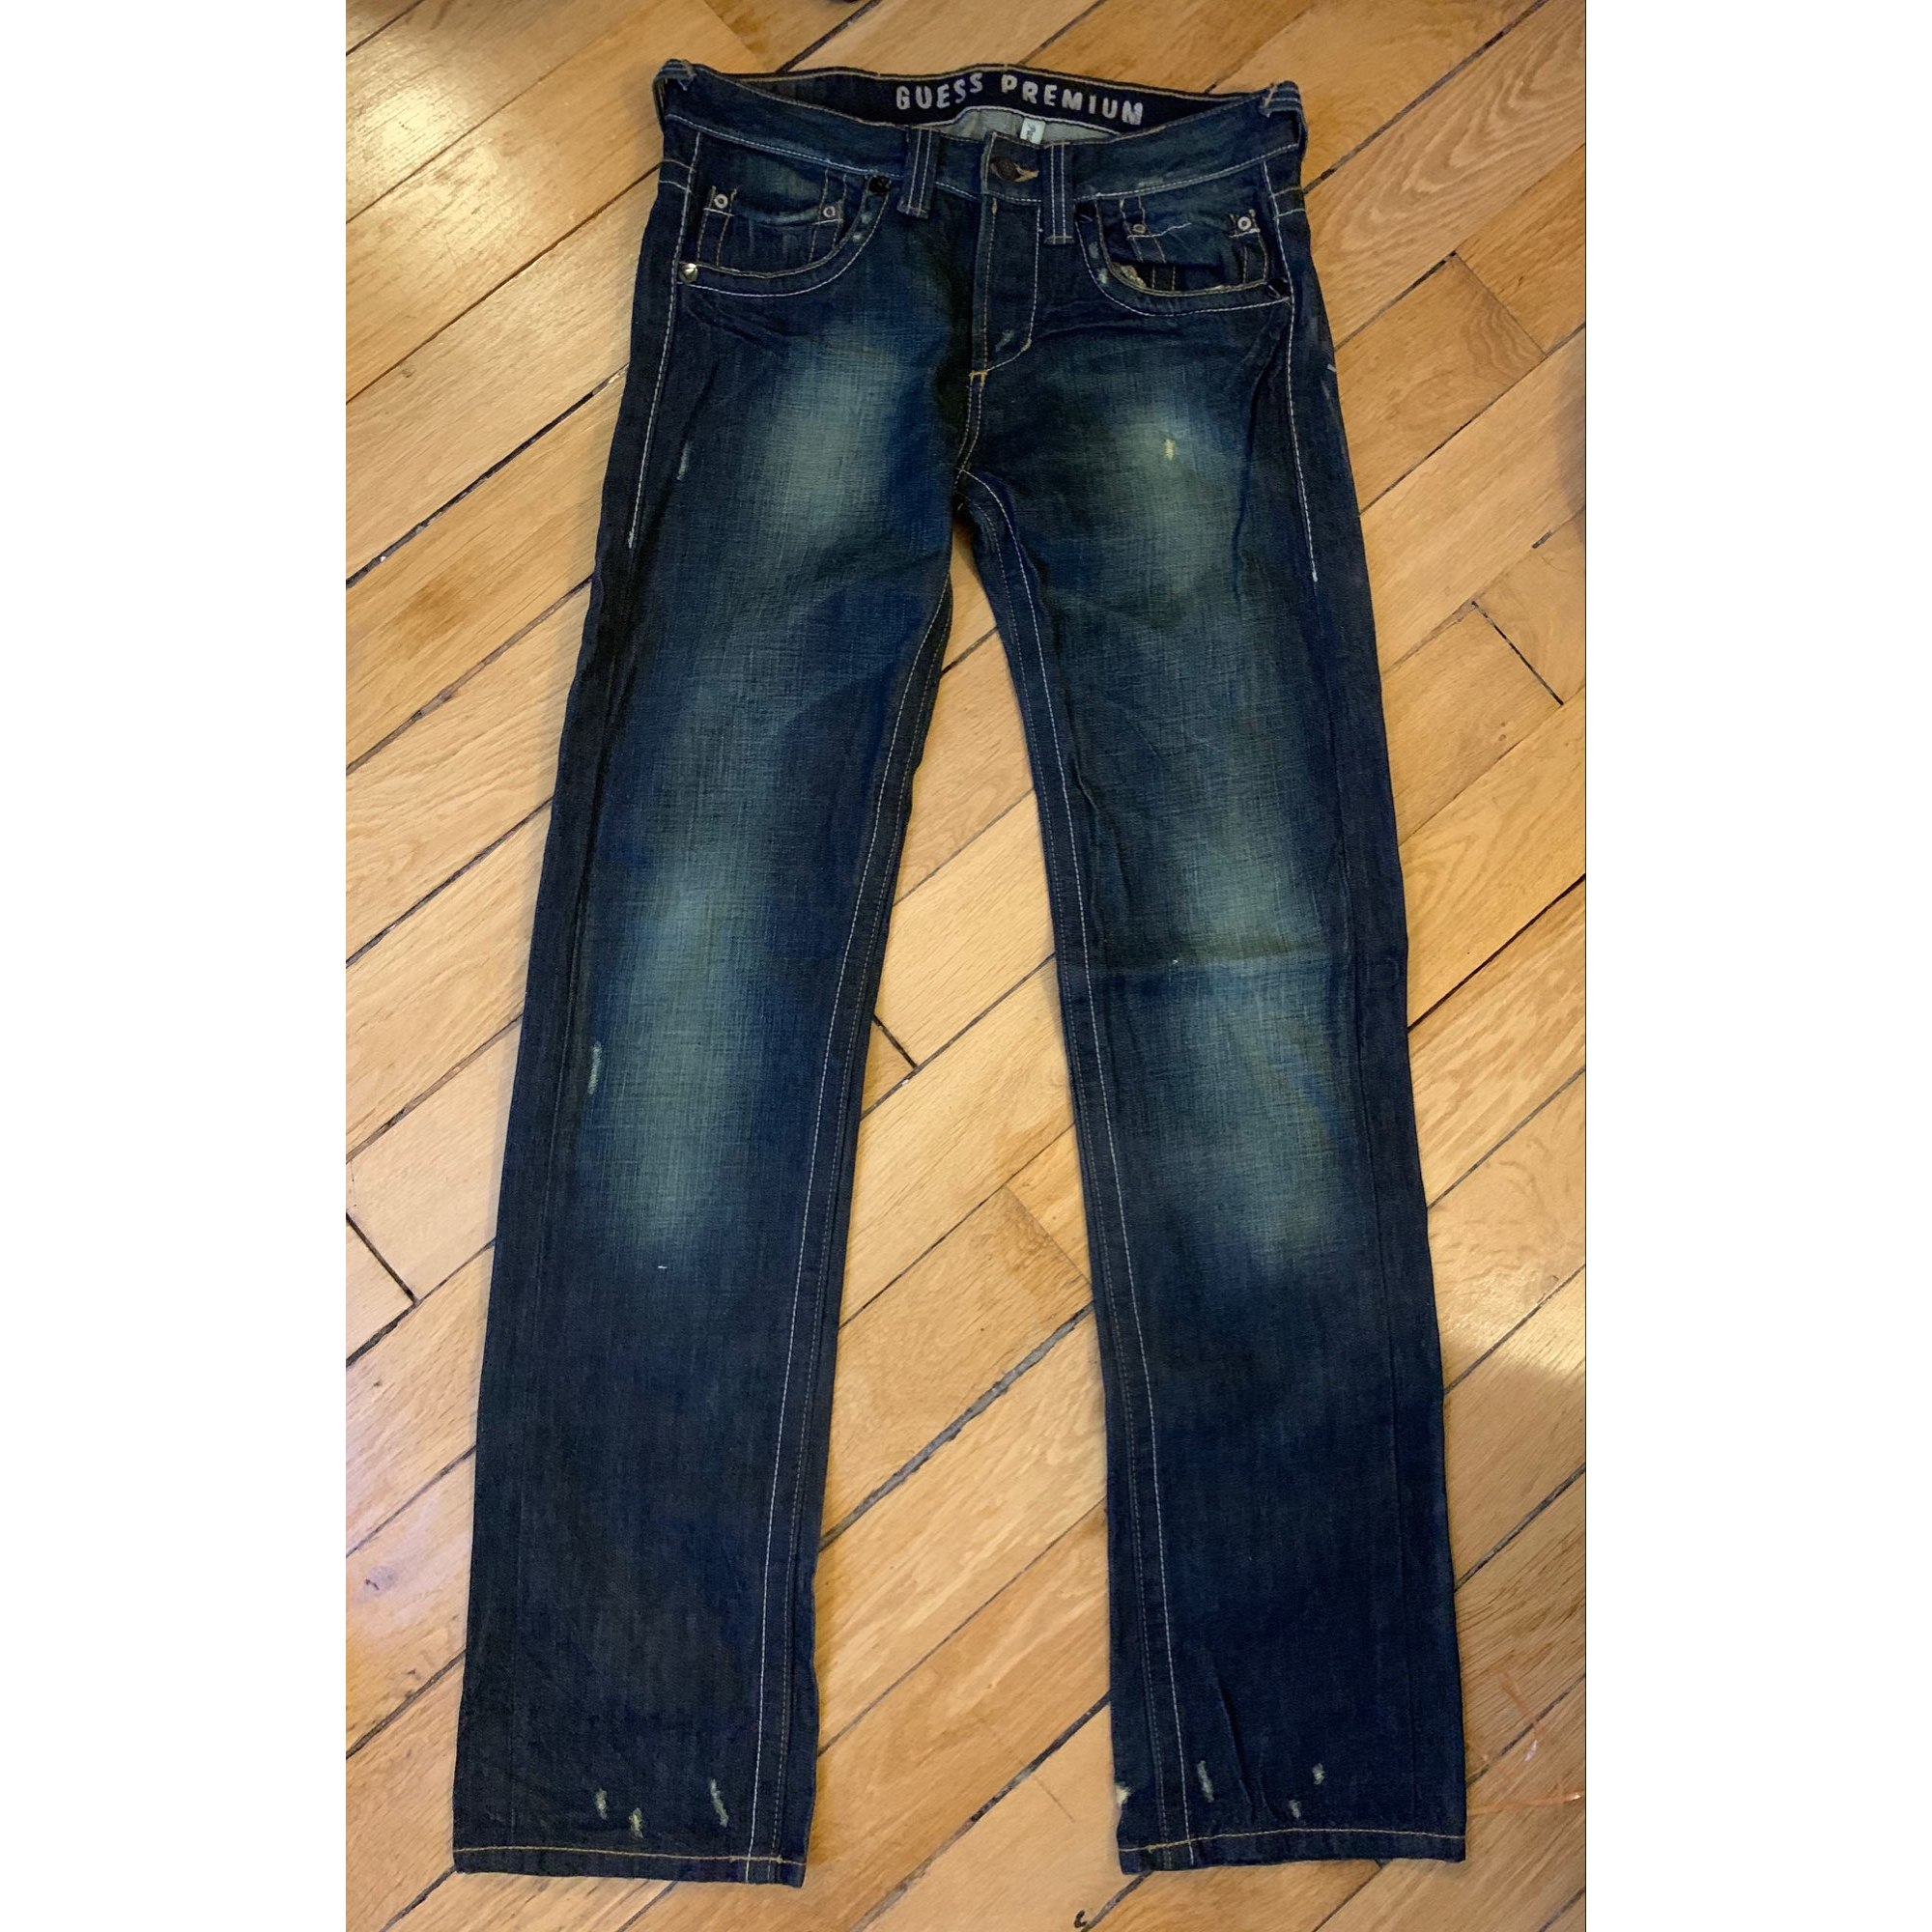 Straight Leg Jeans GUESS Blue, navy, turquoise